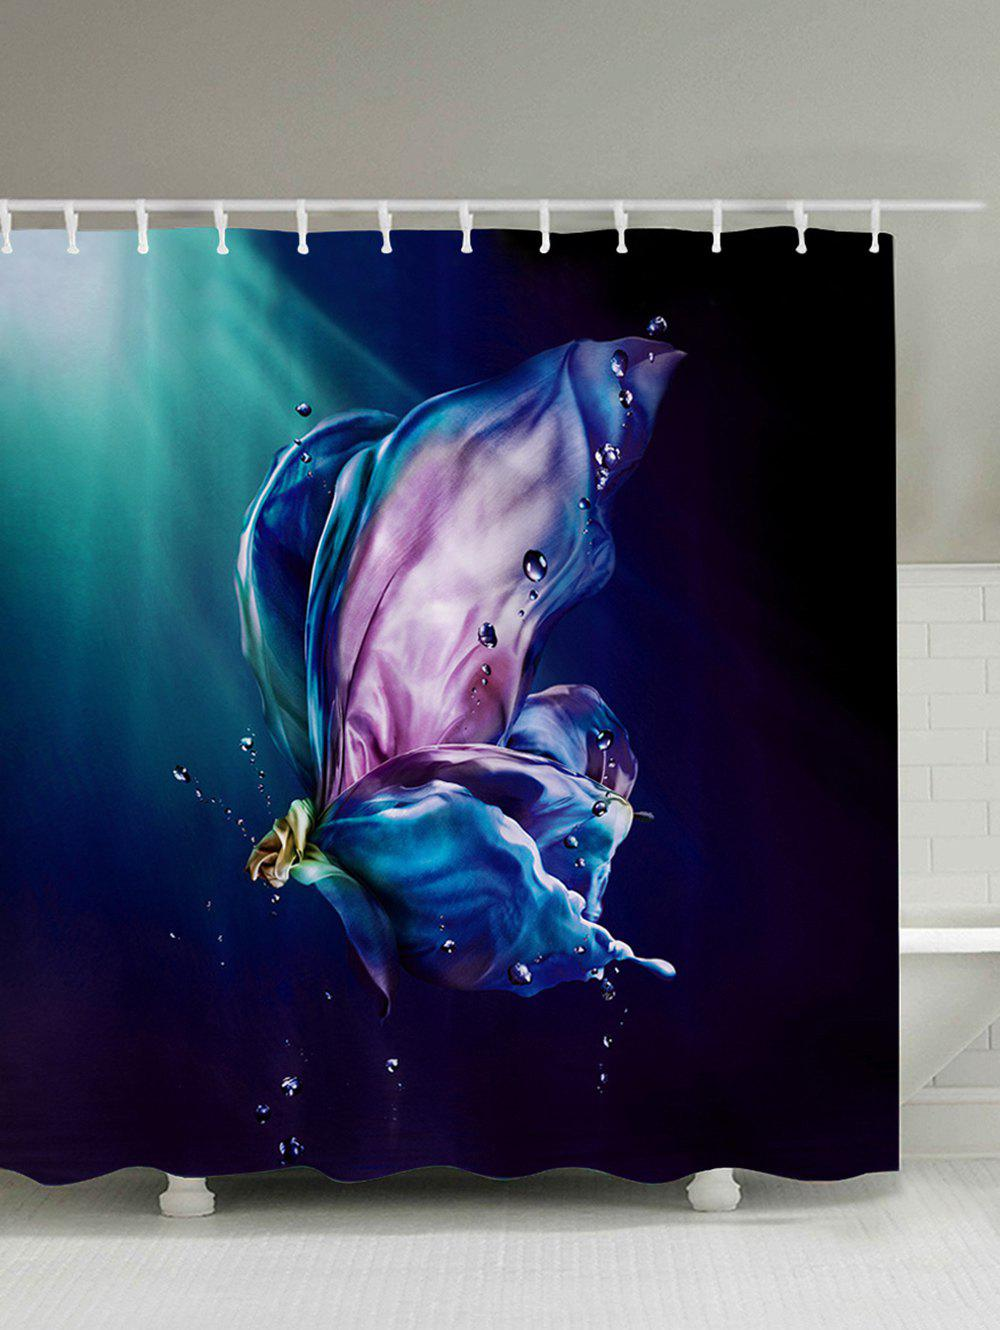 Waterproof Polyester Shower Curtain with Hooks waterproof polyester fabric shower curtain with hooks